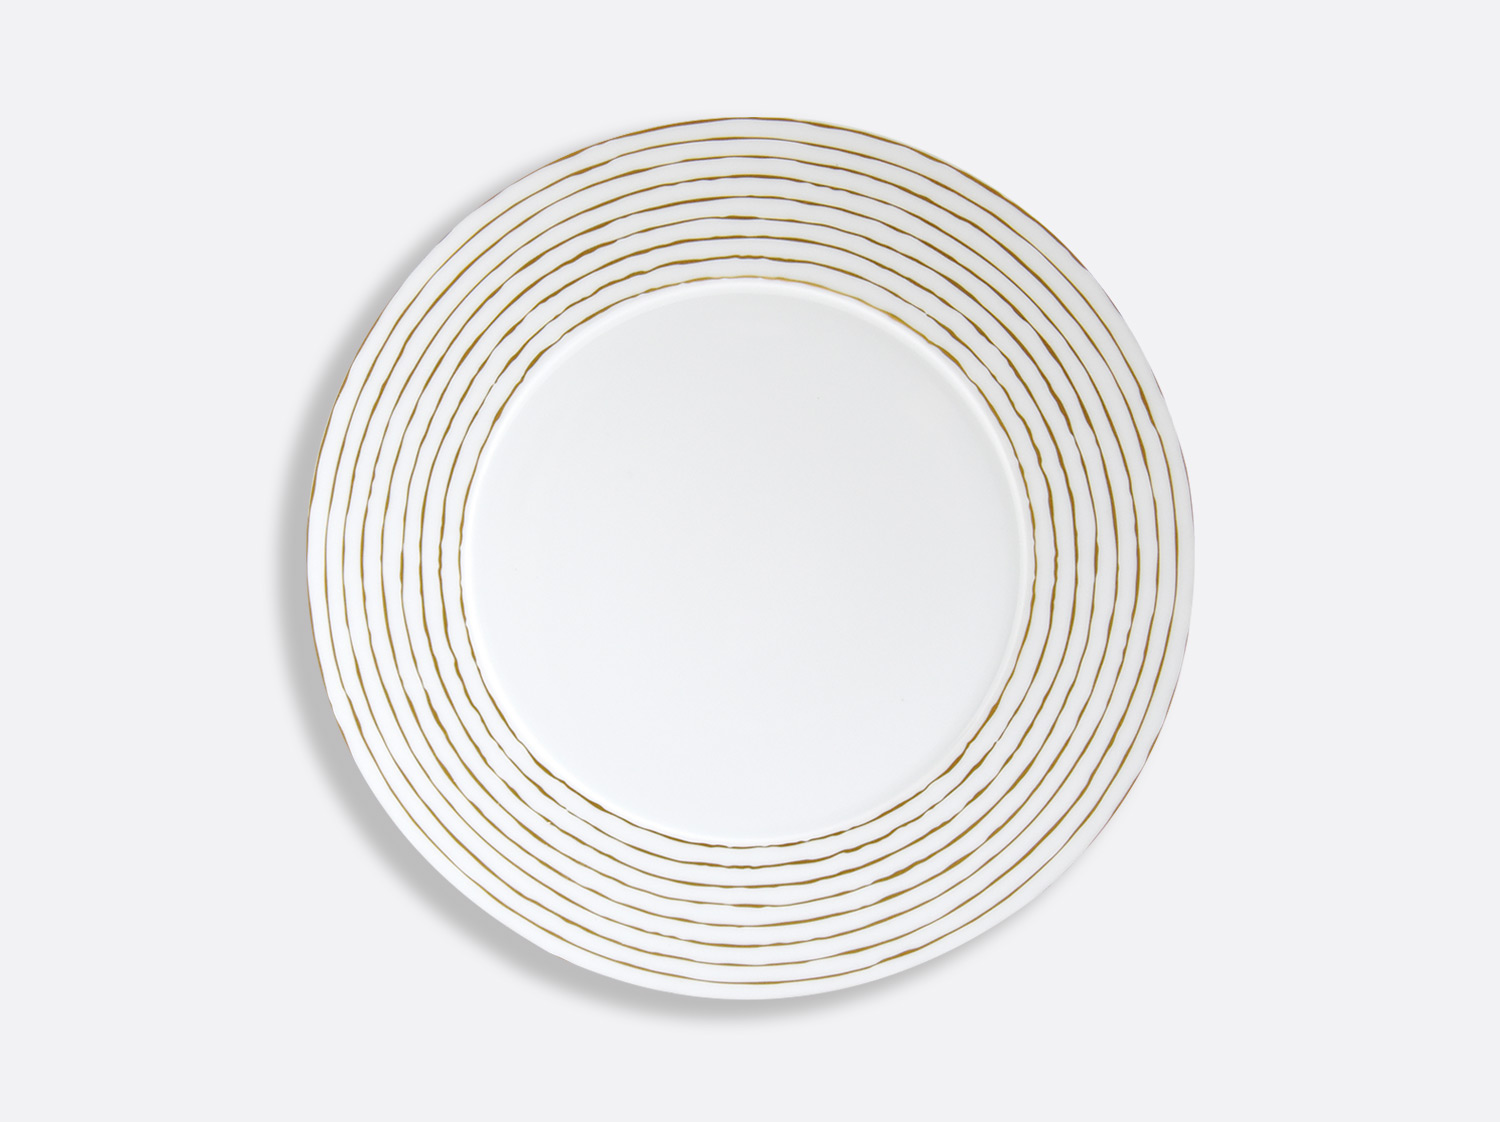 Assiette à dîner 27 cm en porcelaine de la collection Aboro Or Bernardaud